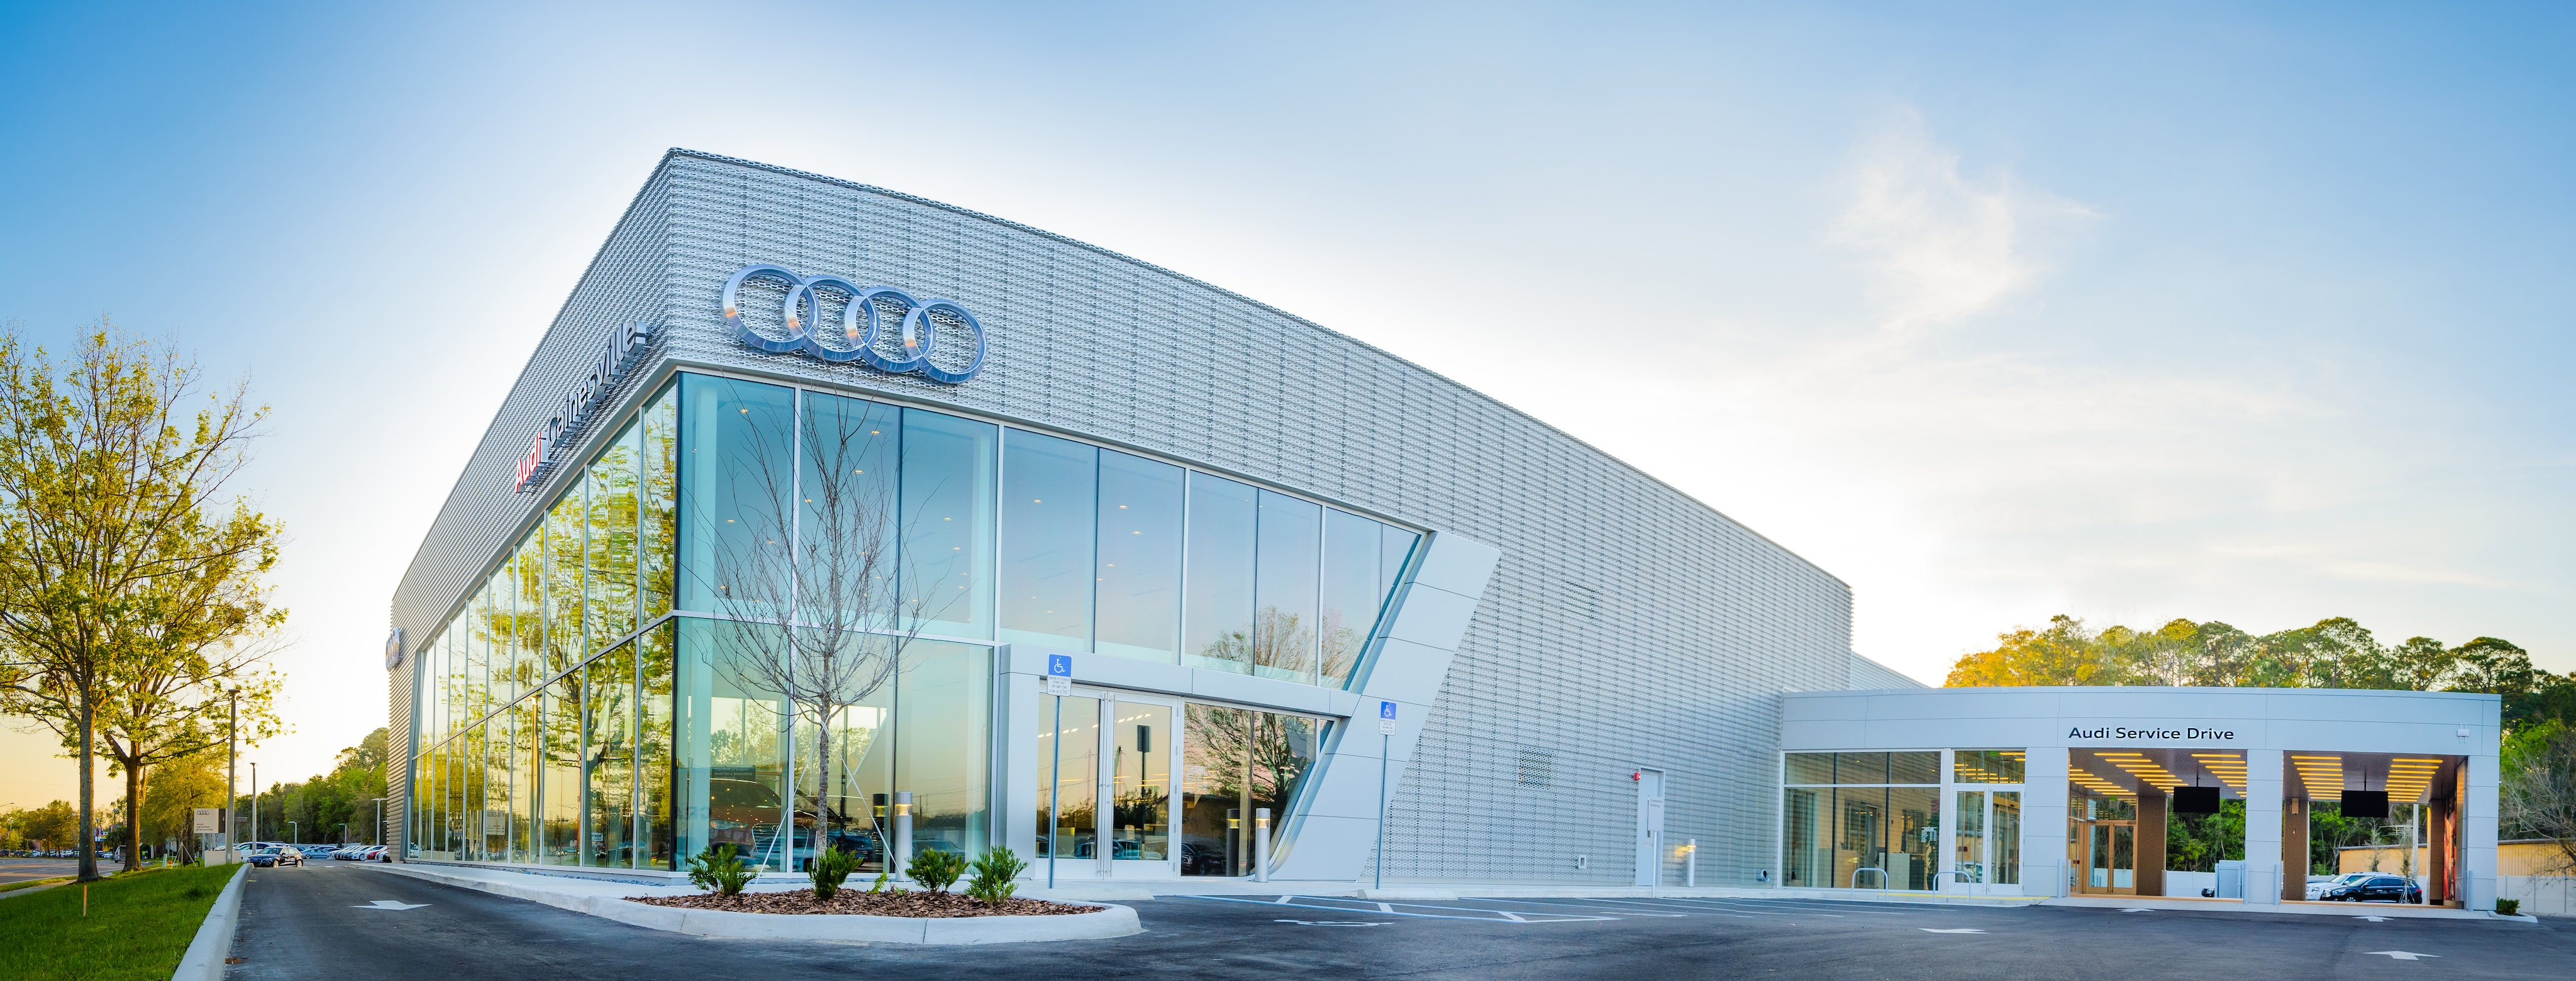 old strong group headquarters auto city salt dealer our brand and last same that service epitomizes style the performance lake offers spacious new photo audi uncompromised